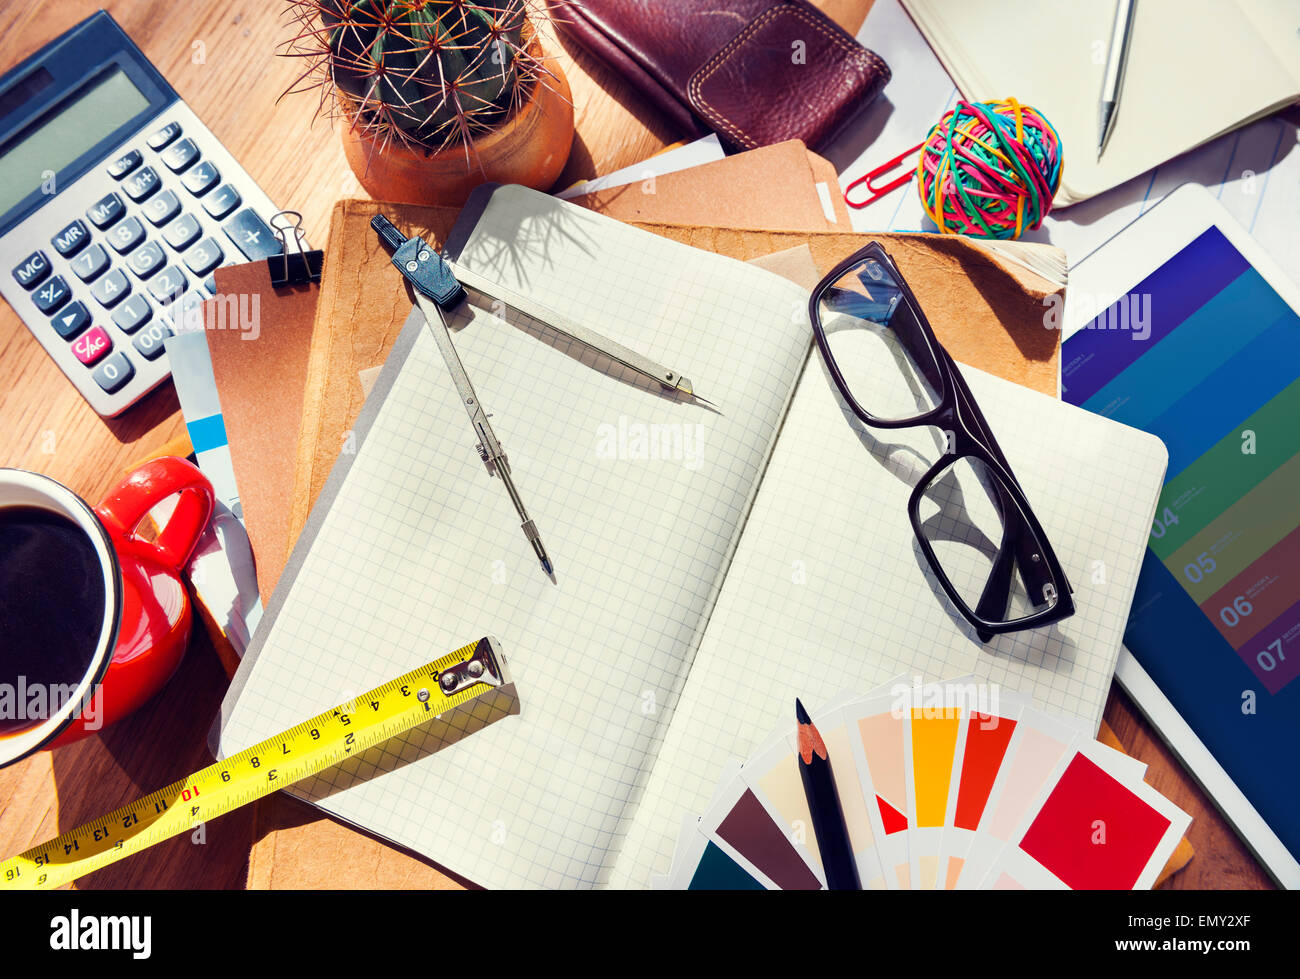 Messy Designer's Table with Tools - Stock Image